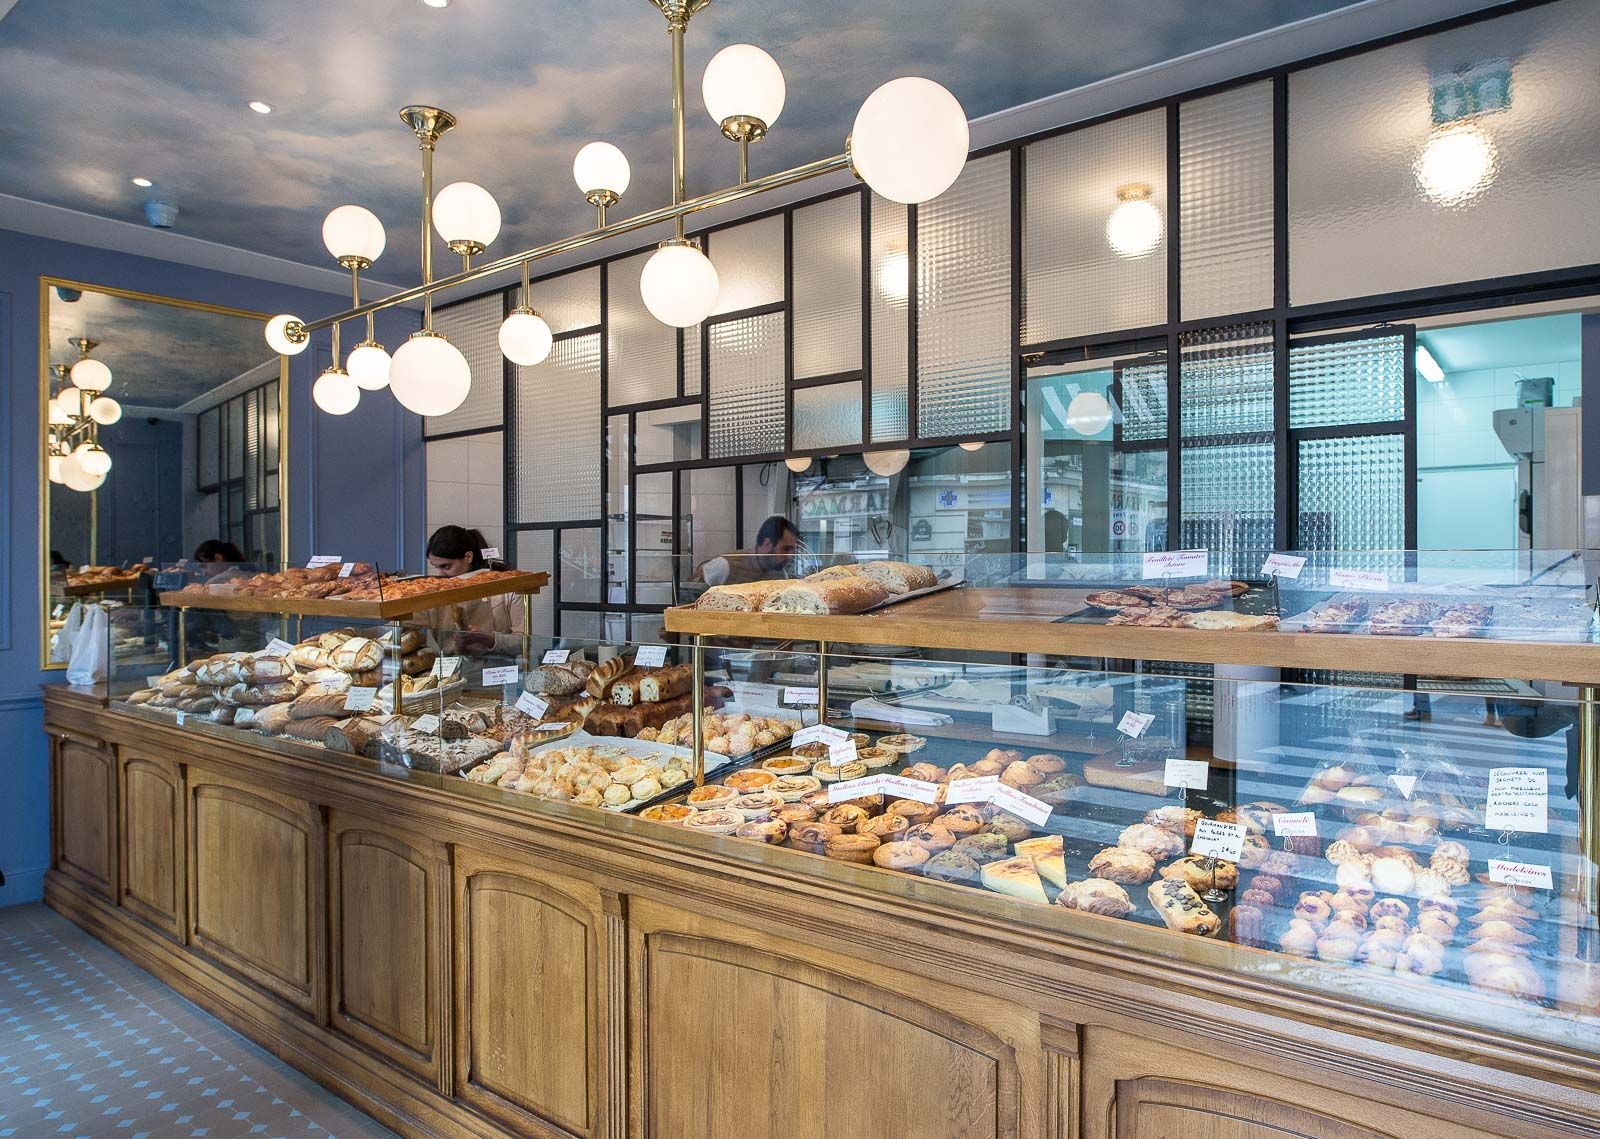 Gana boulangerie architecte interieur decorateur paris for Interieur design